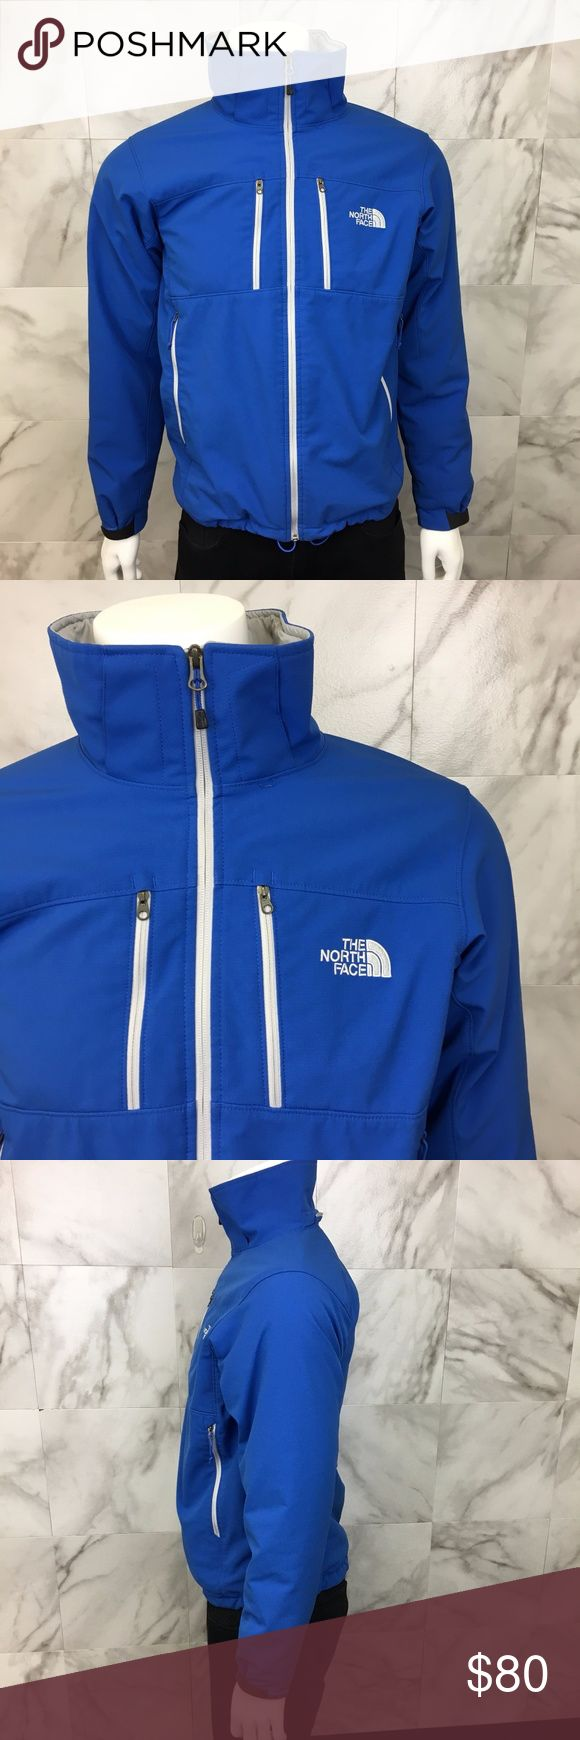 "The North Face Mens Ski Coat size S Lined blue The North Face ski coat jacket. High collar. 2 chest pockets. 2 side pockets. Adjustable sleeve ends. Full front zipper.  Size: small  Length: 27""  Chest: 40""  Sleeve length: 26""  Shoulder width: 18""  Material: 100% polyester  Color: Blue  Condition: Great pre-owned condition. Normal signs of light wear. Missing hood. The North Face Jackets & Coats Ski & Snowboard"